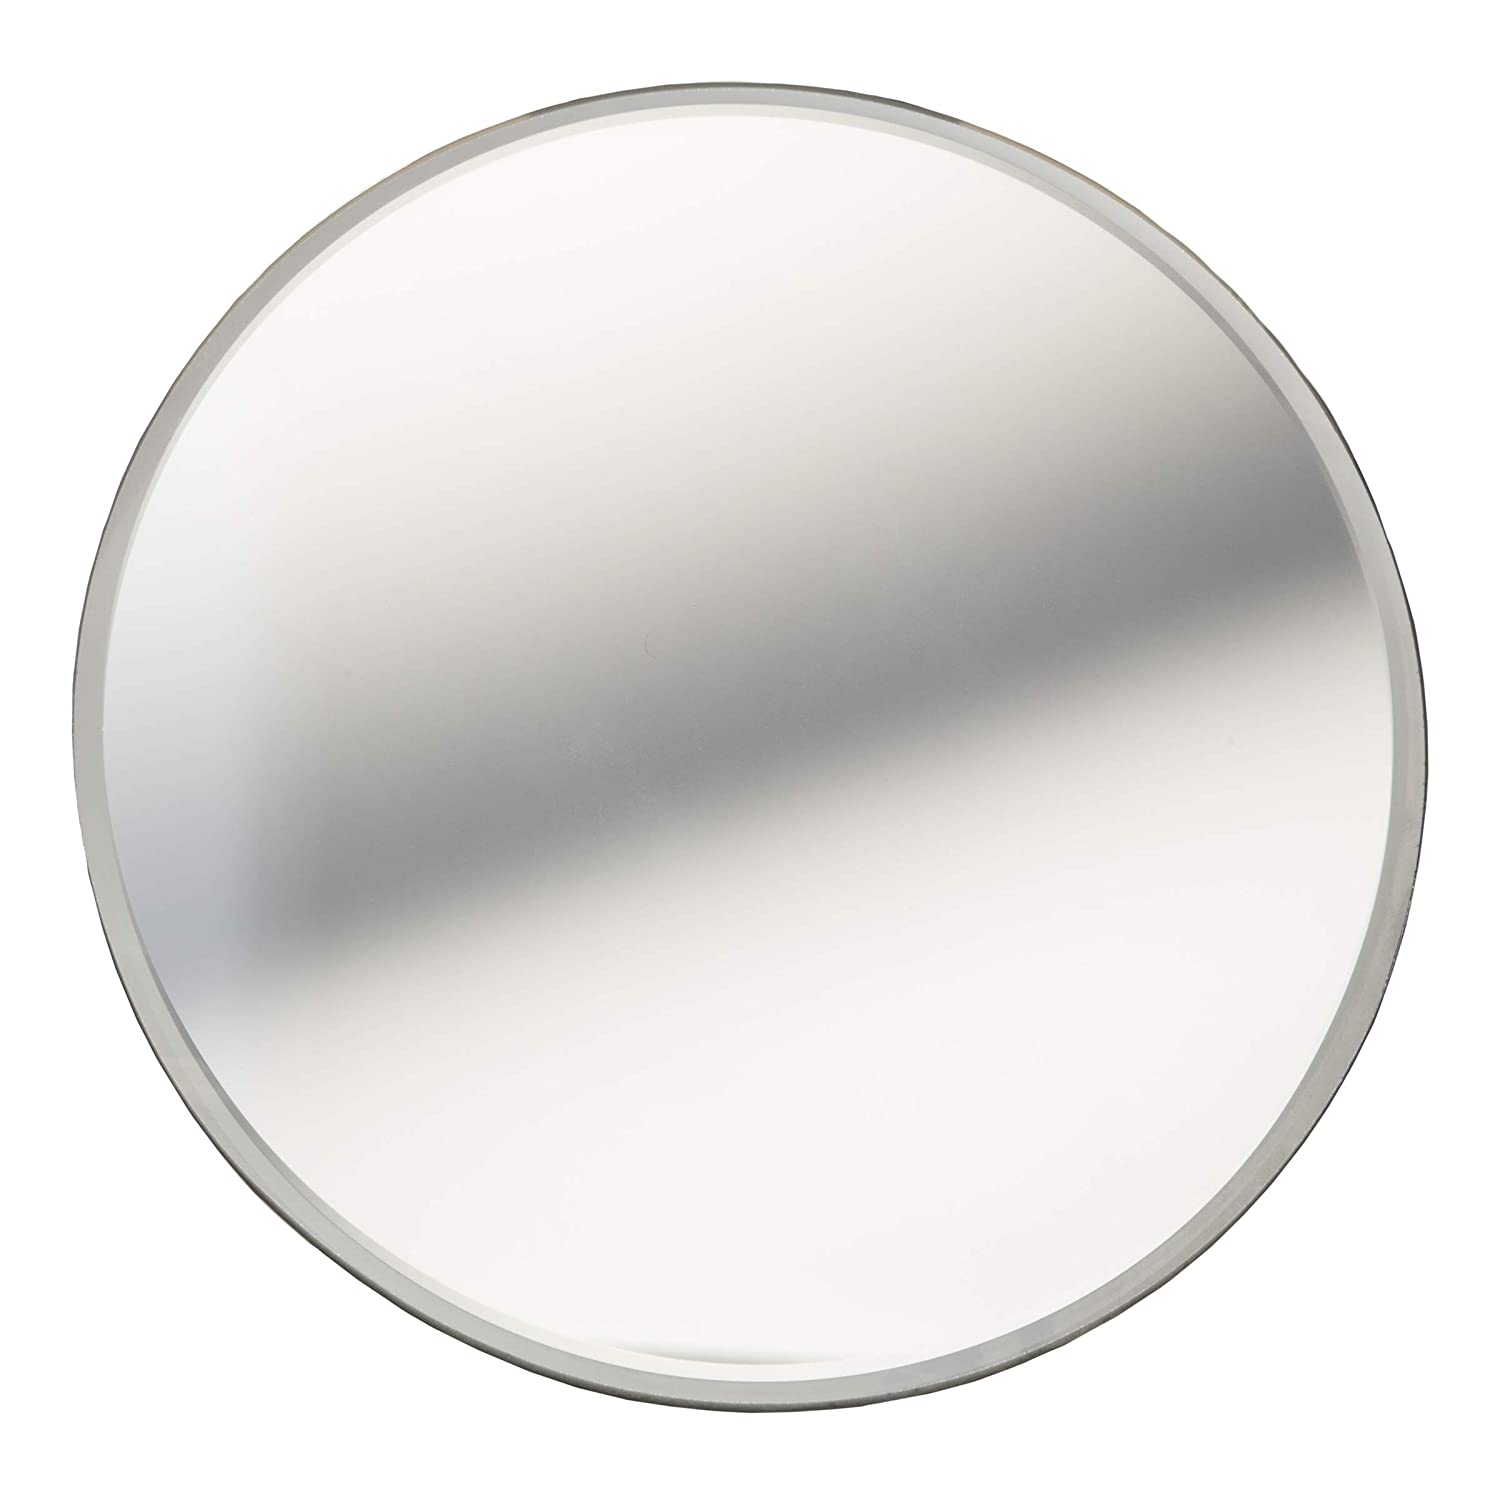 Darice Set of 10 14 Round Glass Mirrors Wedding & Banquet Table Centerpieces 1633-96